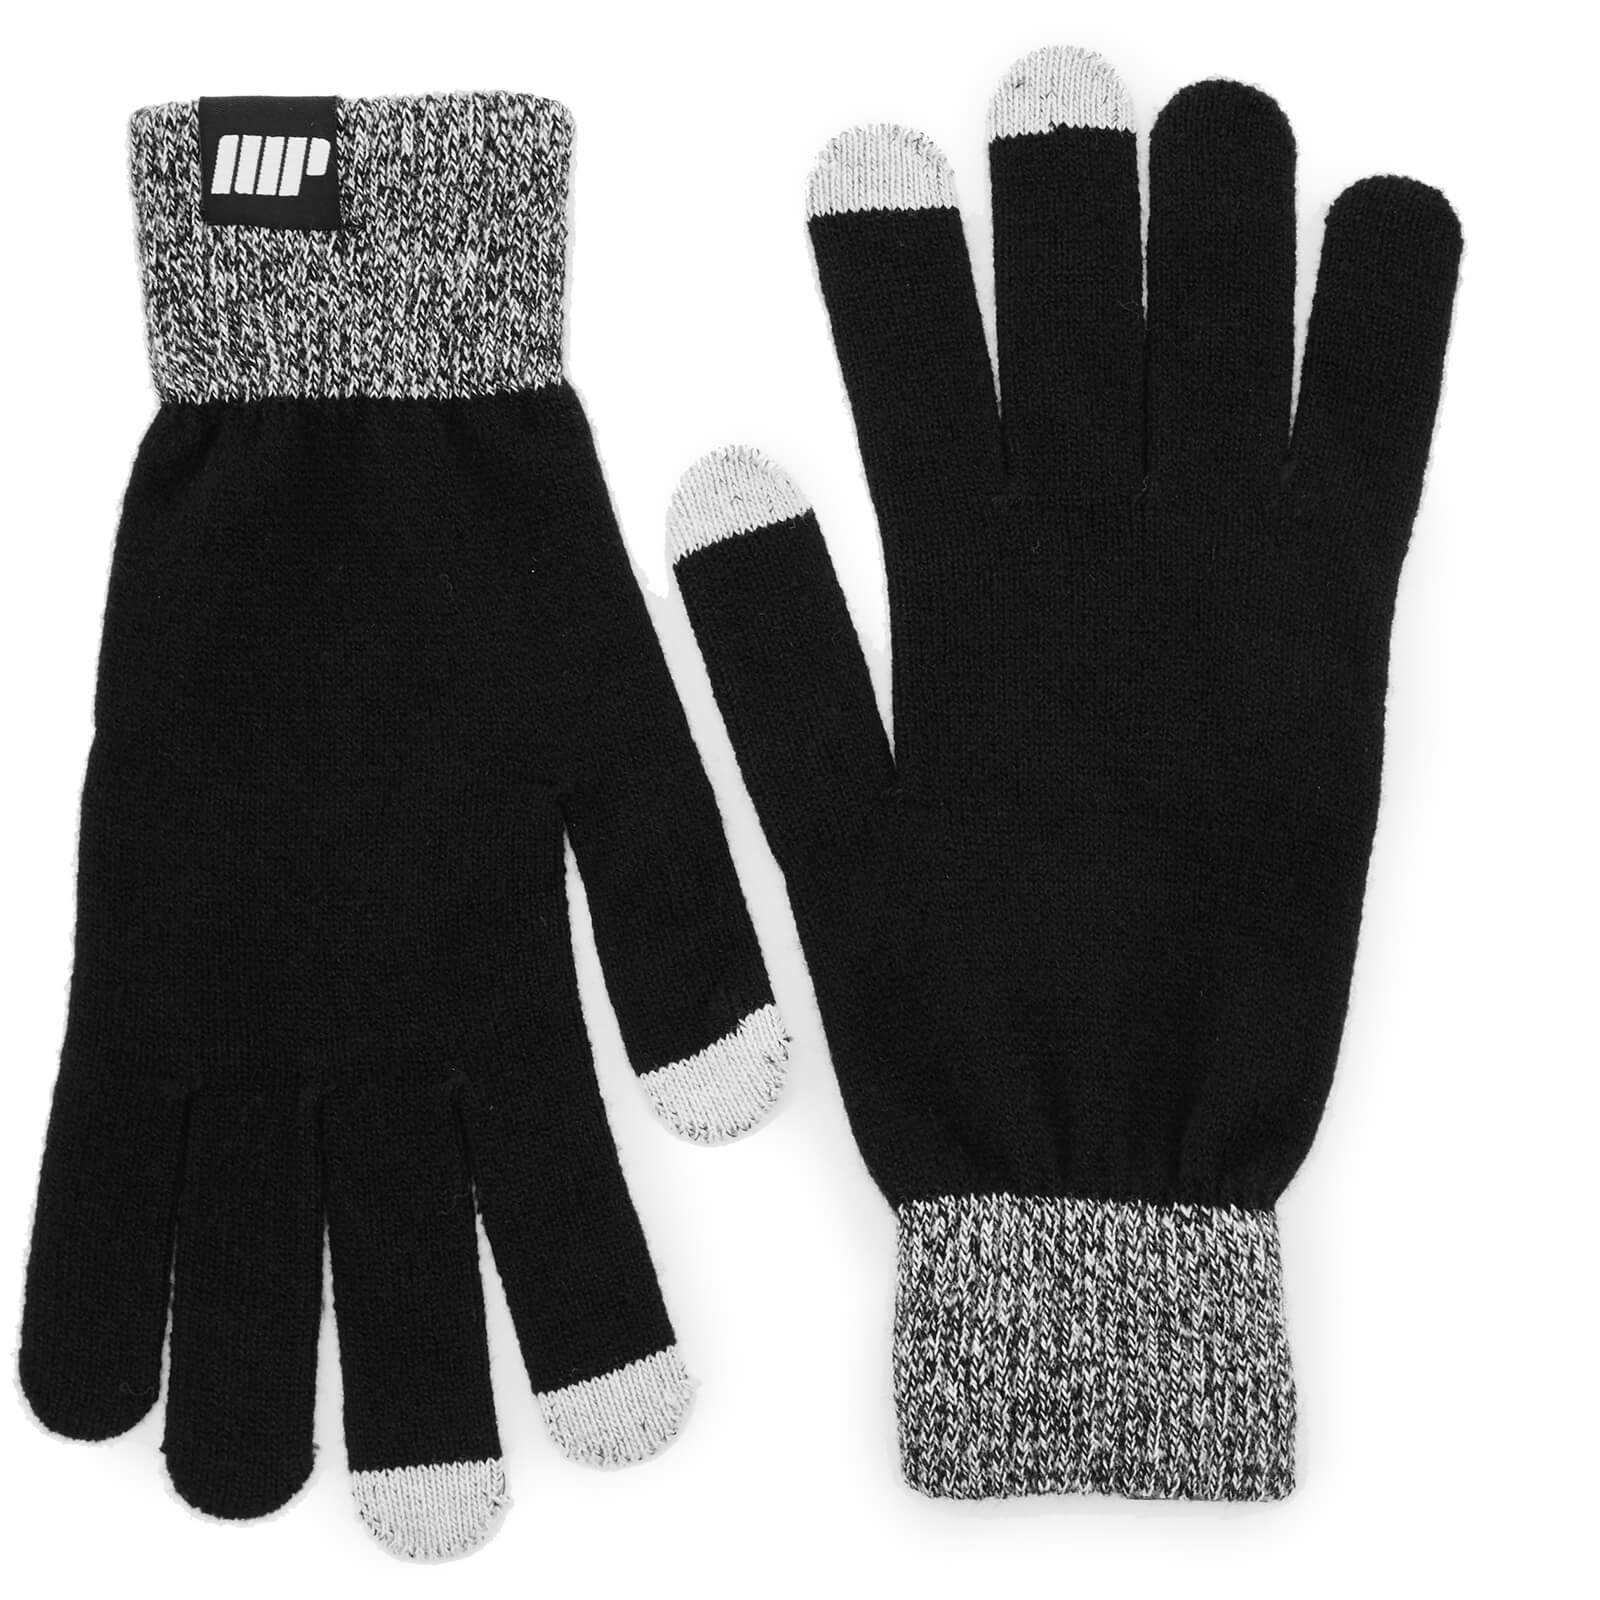 Myprotein Knitted Gloves - Black - L/XL